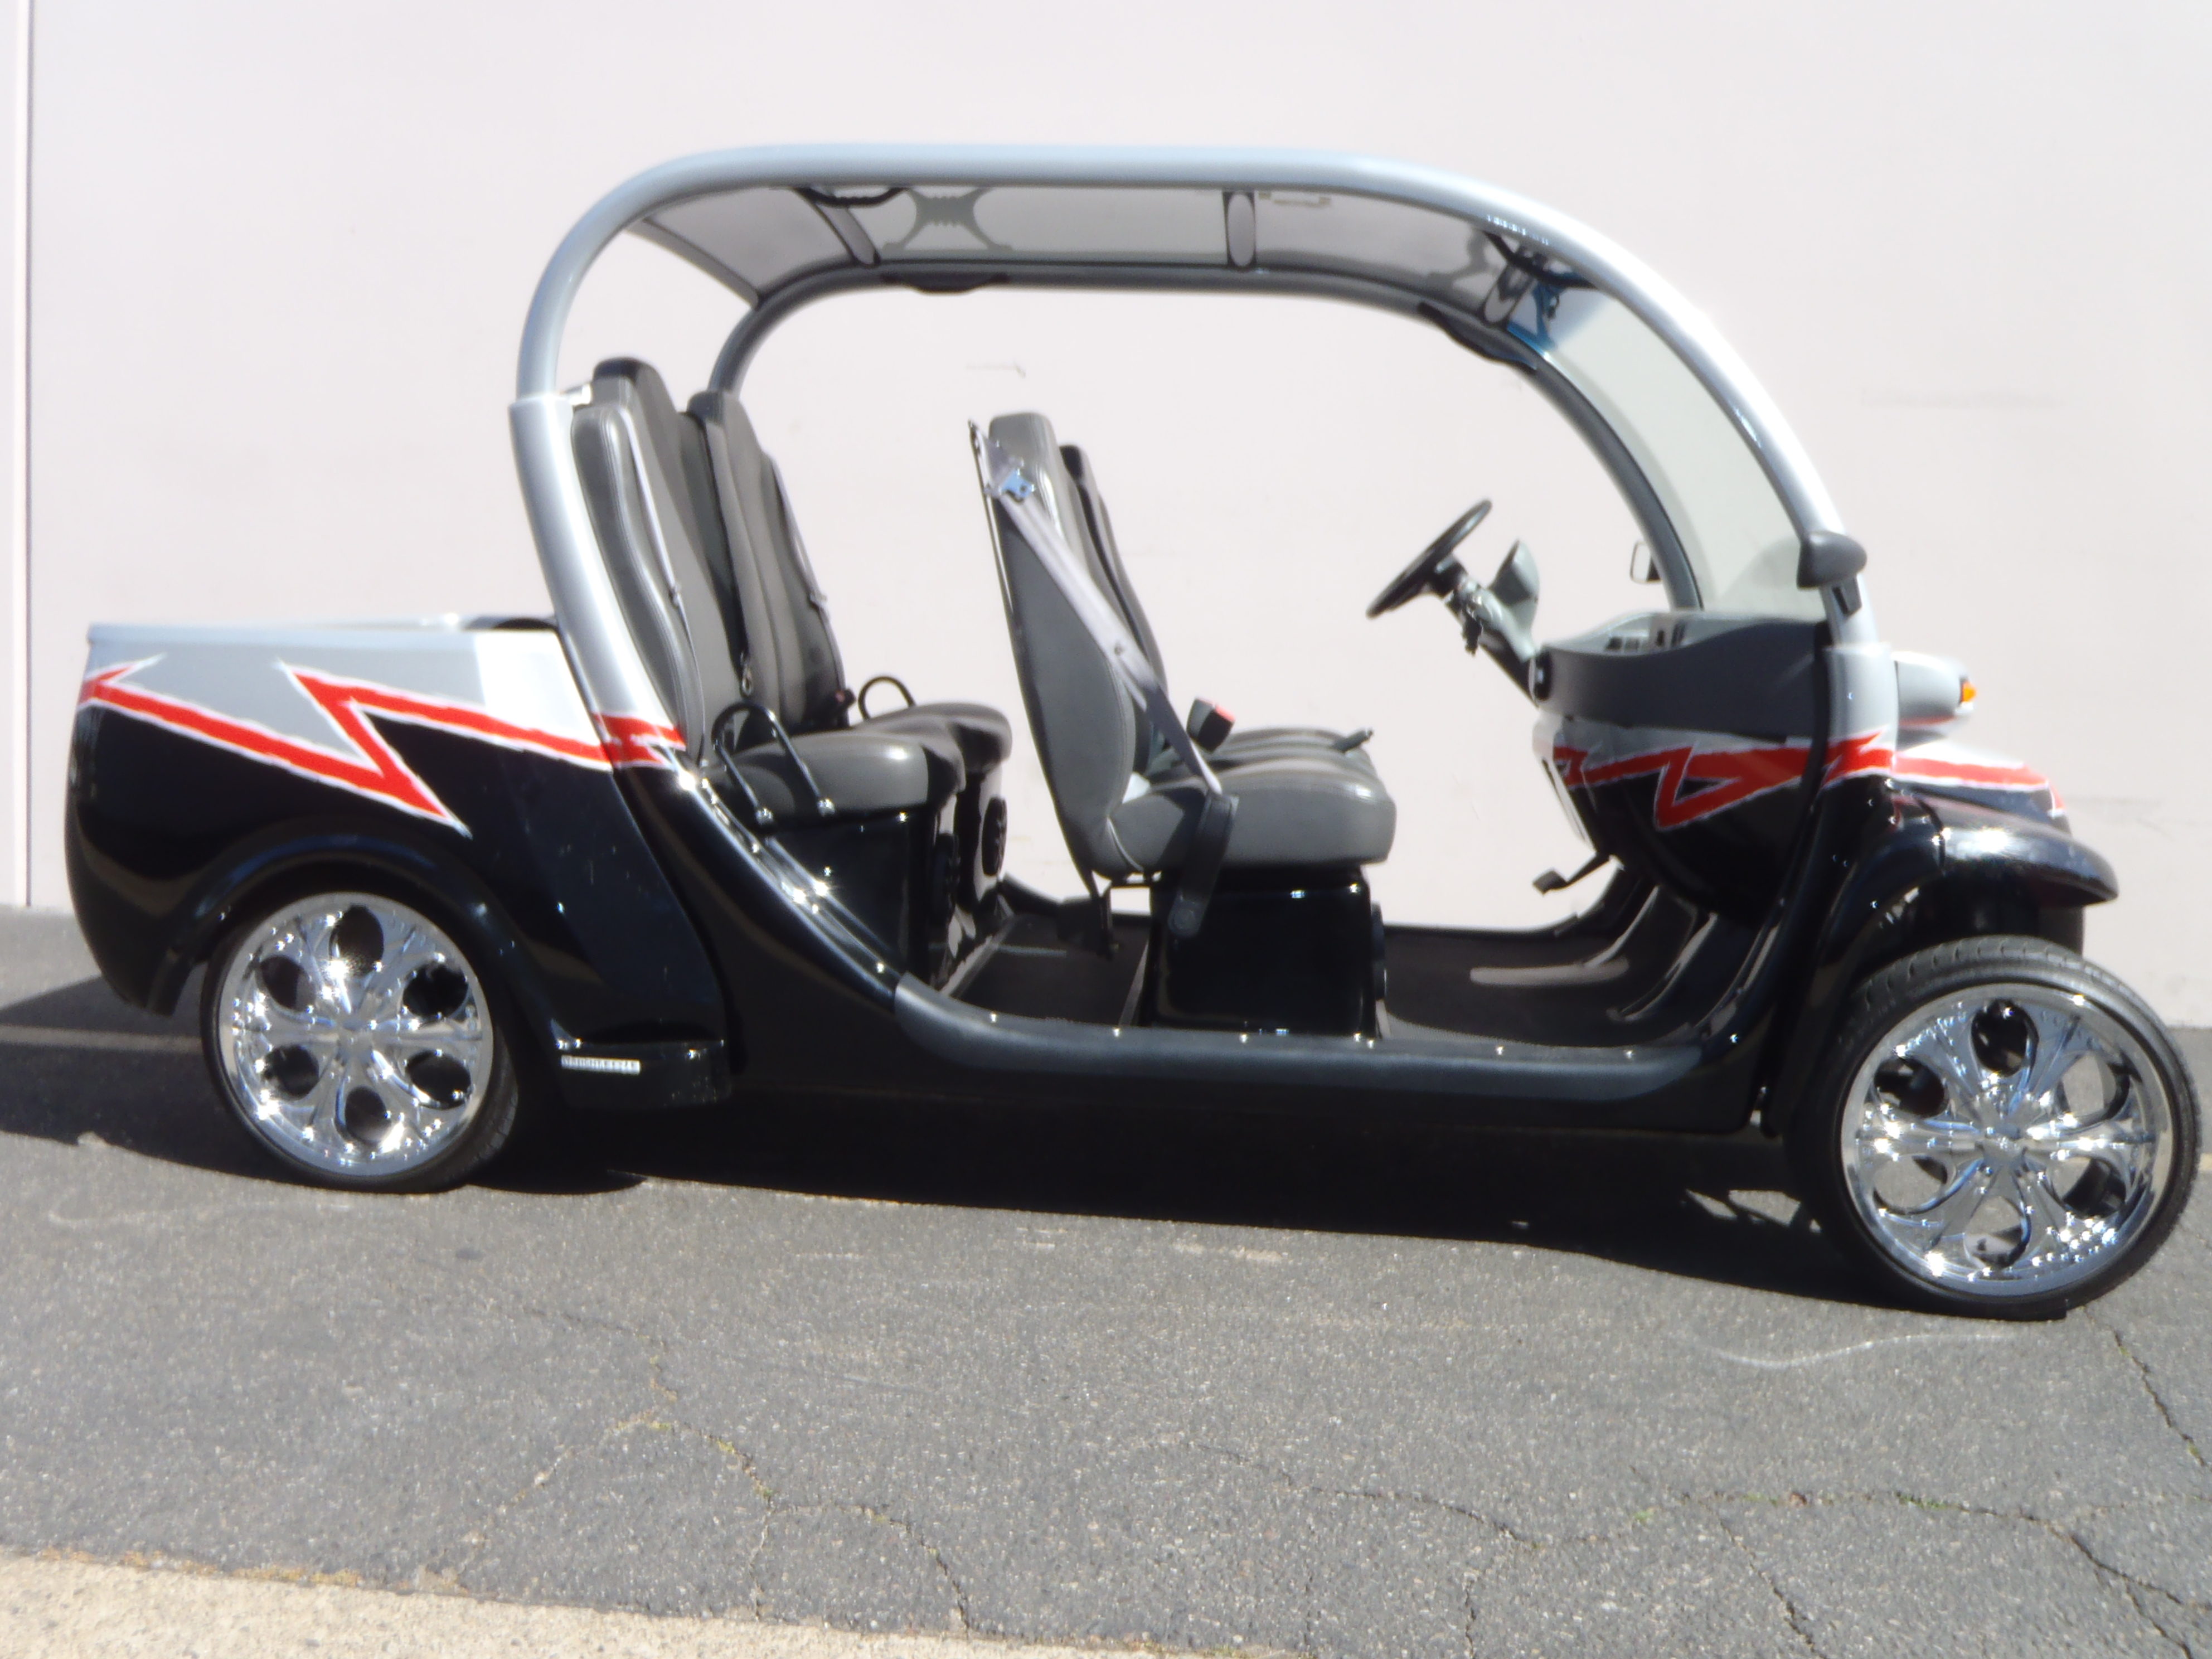 Golf Car For Sale: Los Angeles And Orange County California's Best Golf Carts